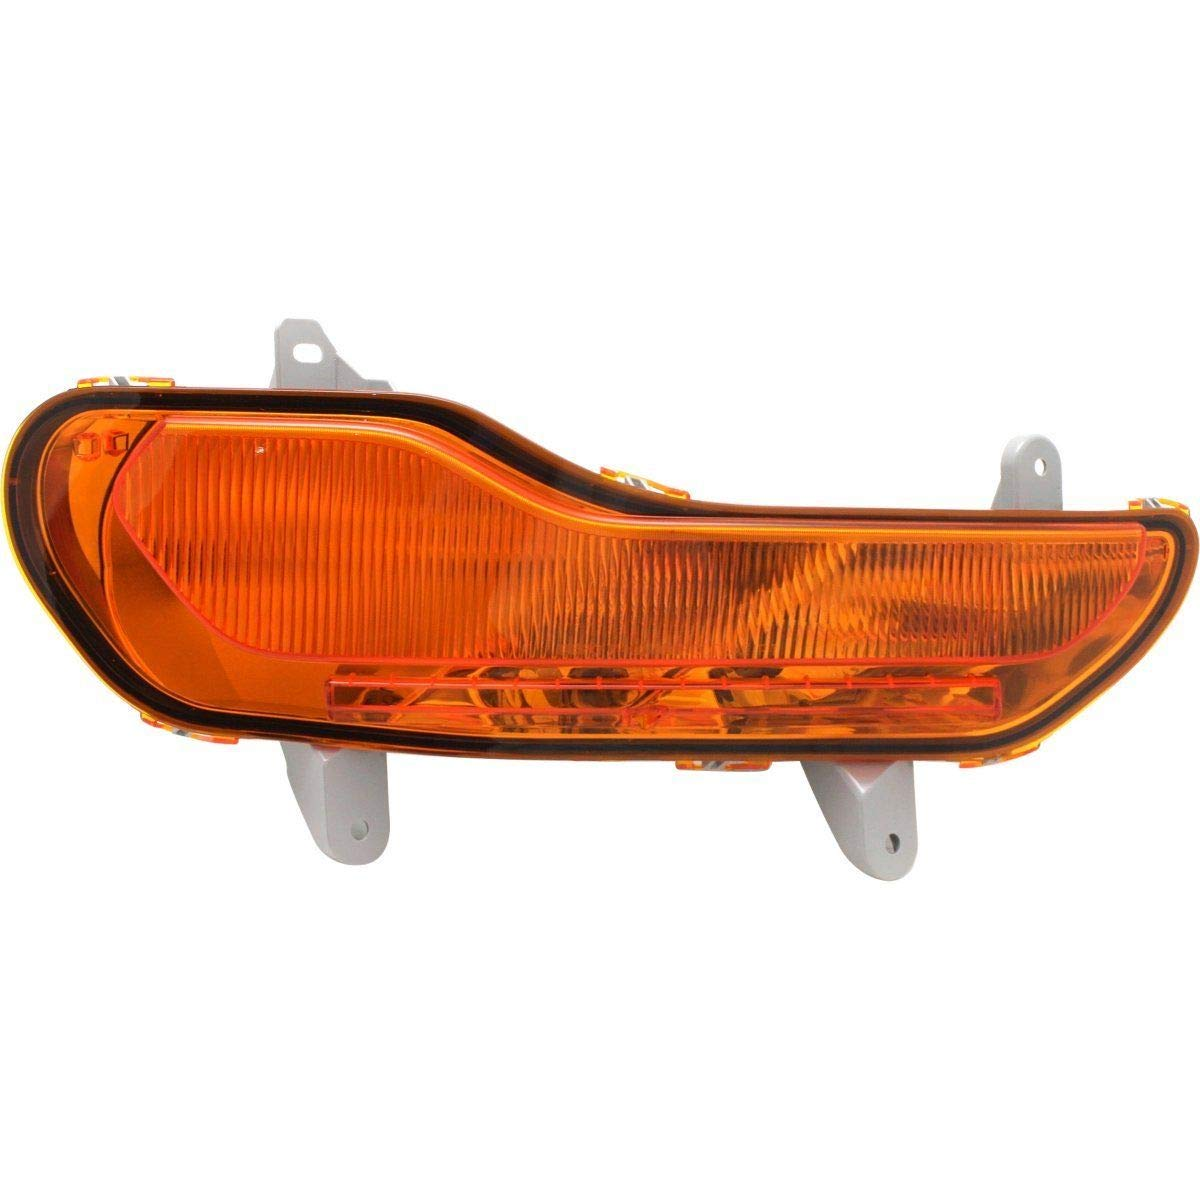 Vehicles Without Fog Lamps FO2521190 New Right Passenger Side Park Lamp Assembly For 2013-2016 Ford Escape